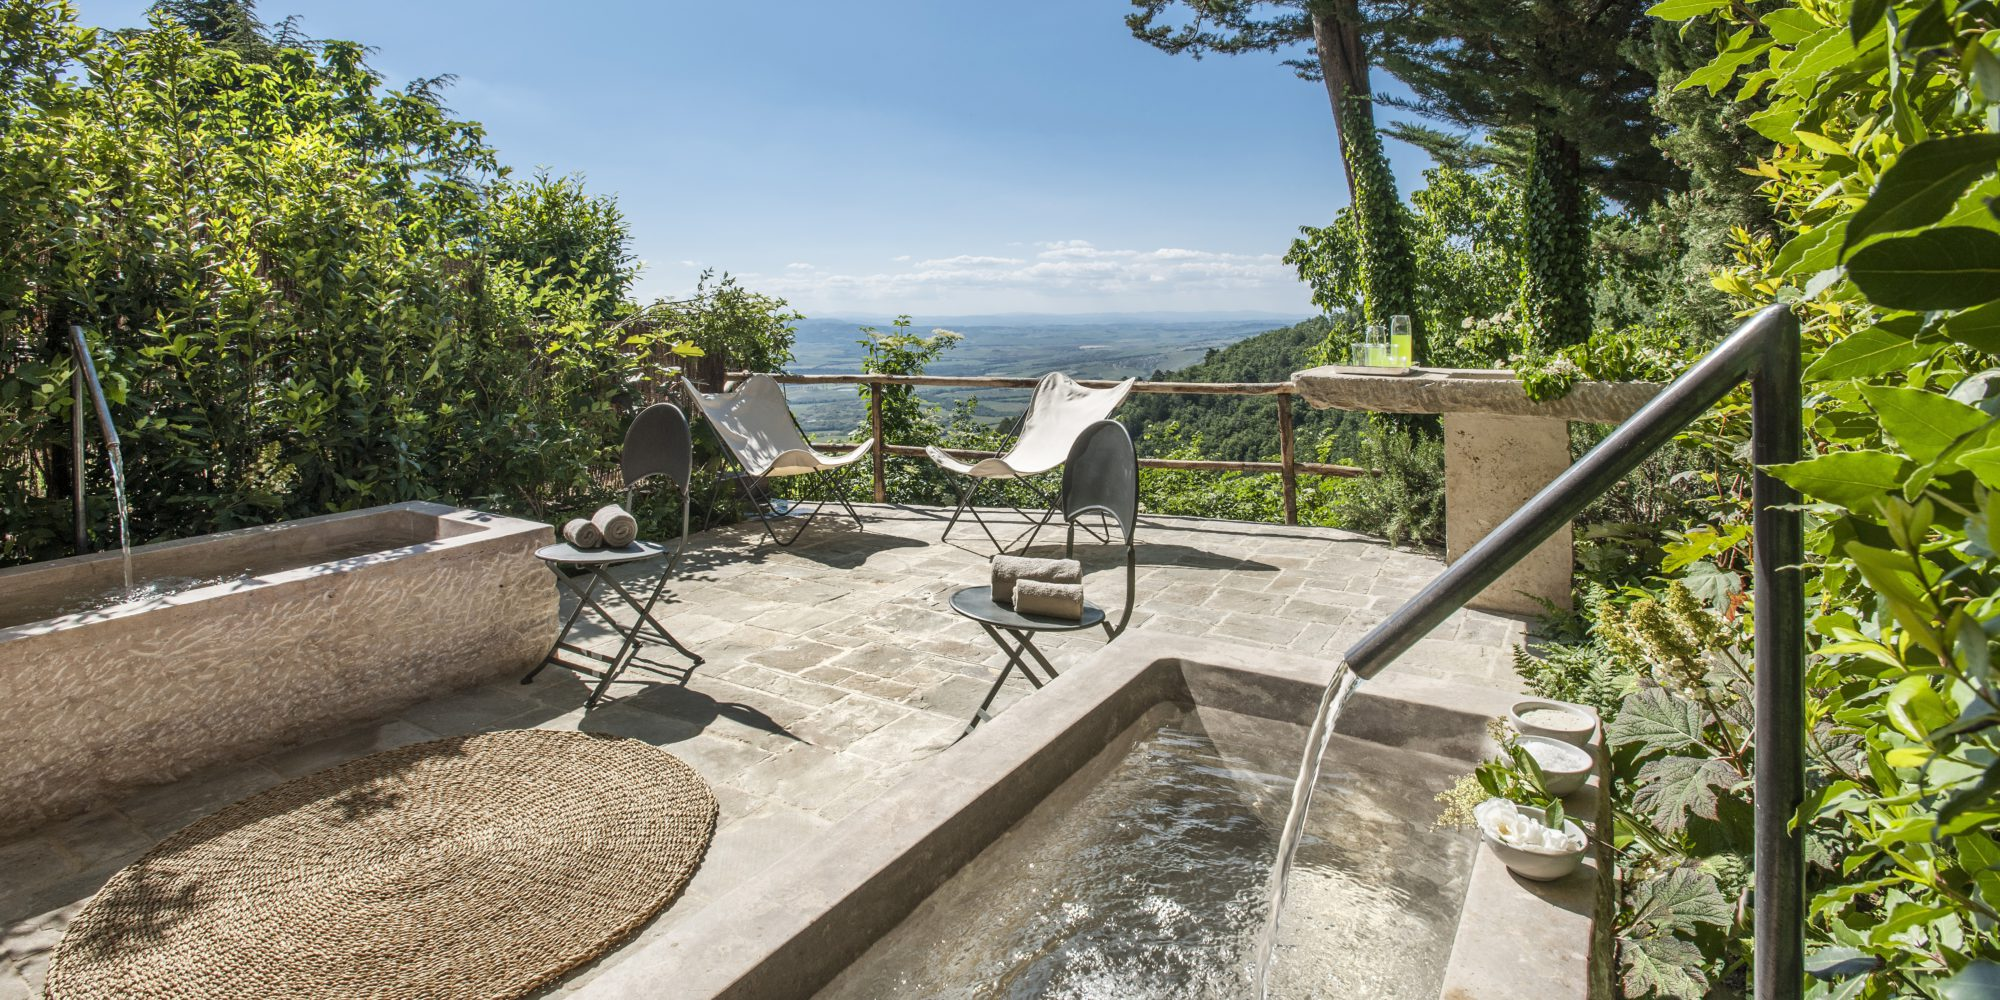 From the Monteverdi Tuscany Spa you will enjoy a magnificient view of the Val d'Orcia, a UNESCO World Heritage site since 2004 and many beautiful landscapes.